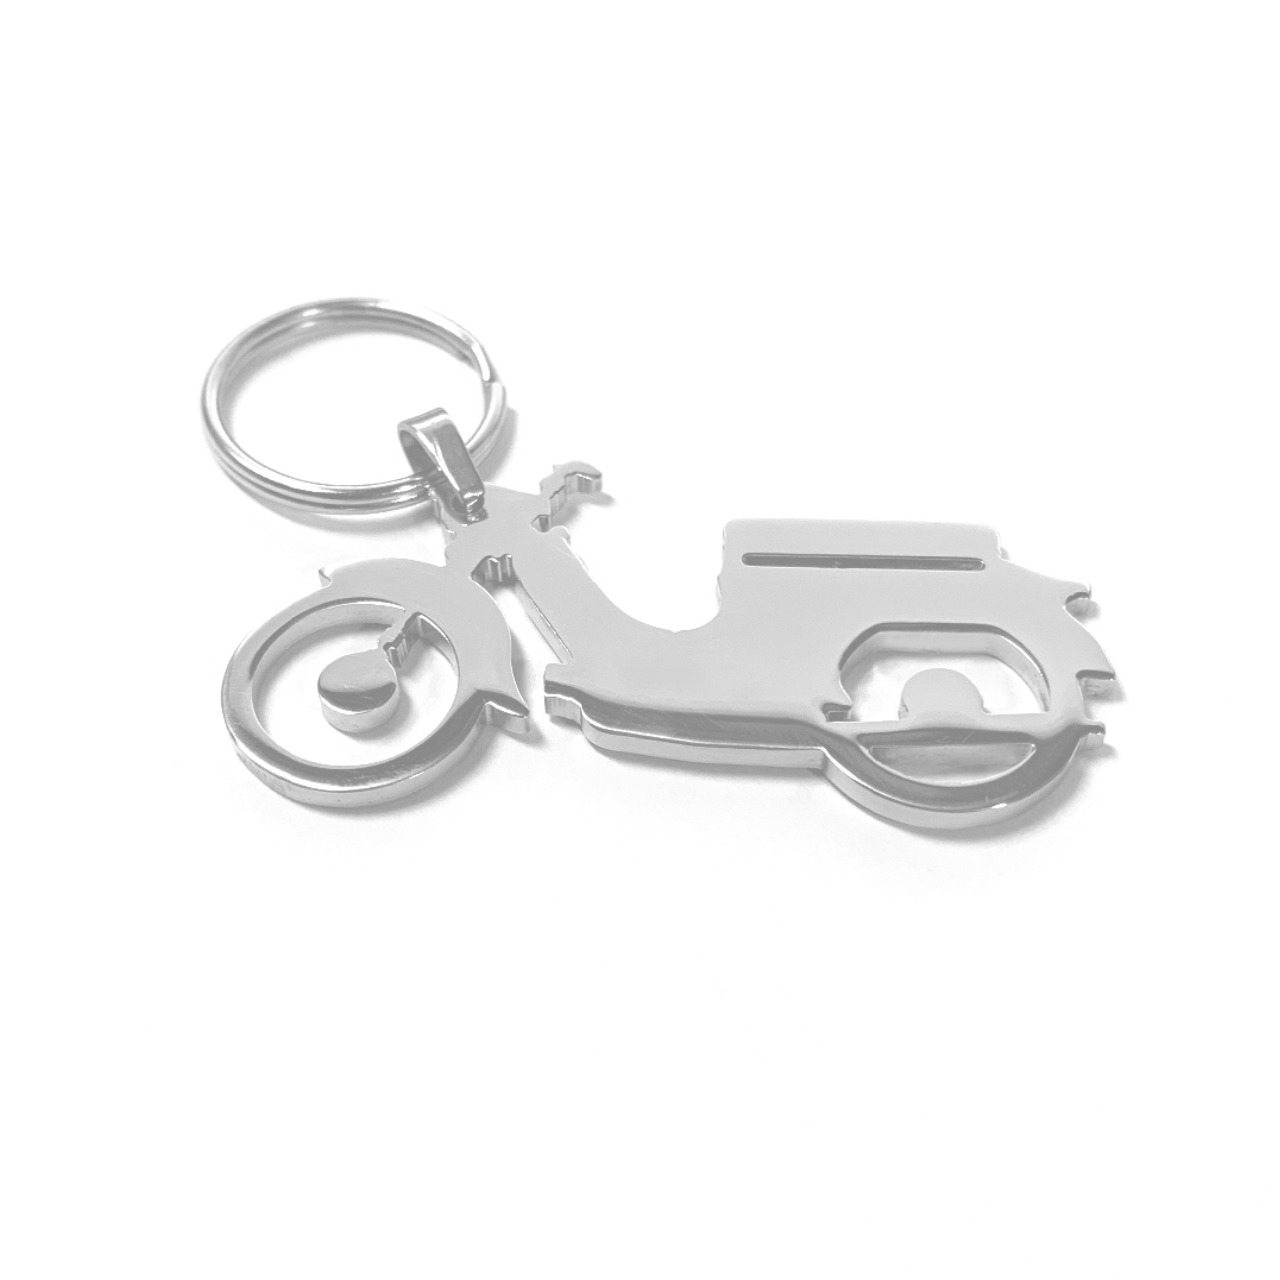 Key ring - JAWA 50 PIONÝR (profile)